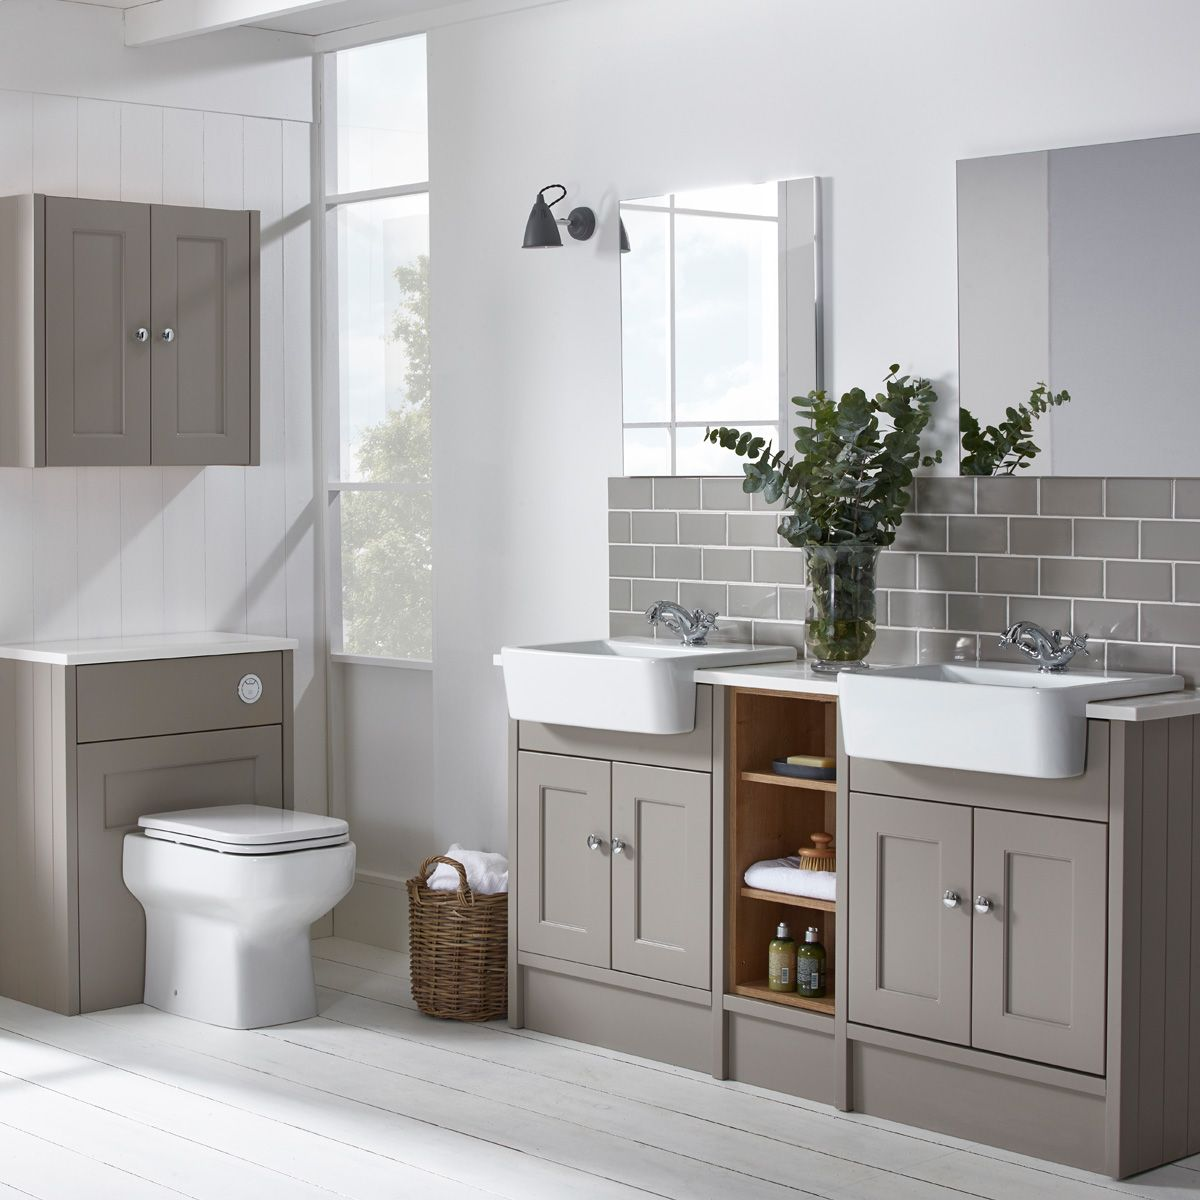 Roper Rhodes Burford Mocha His And Hers Bathroom